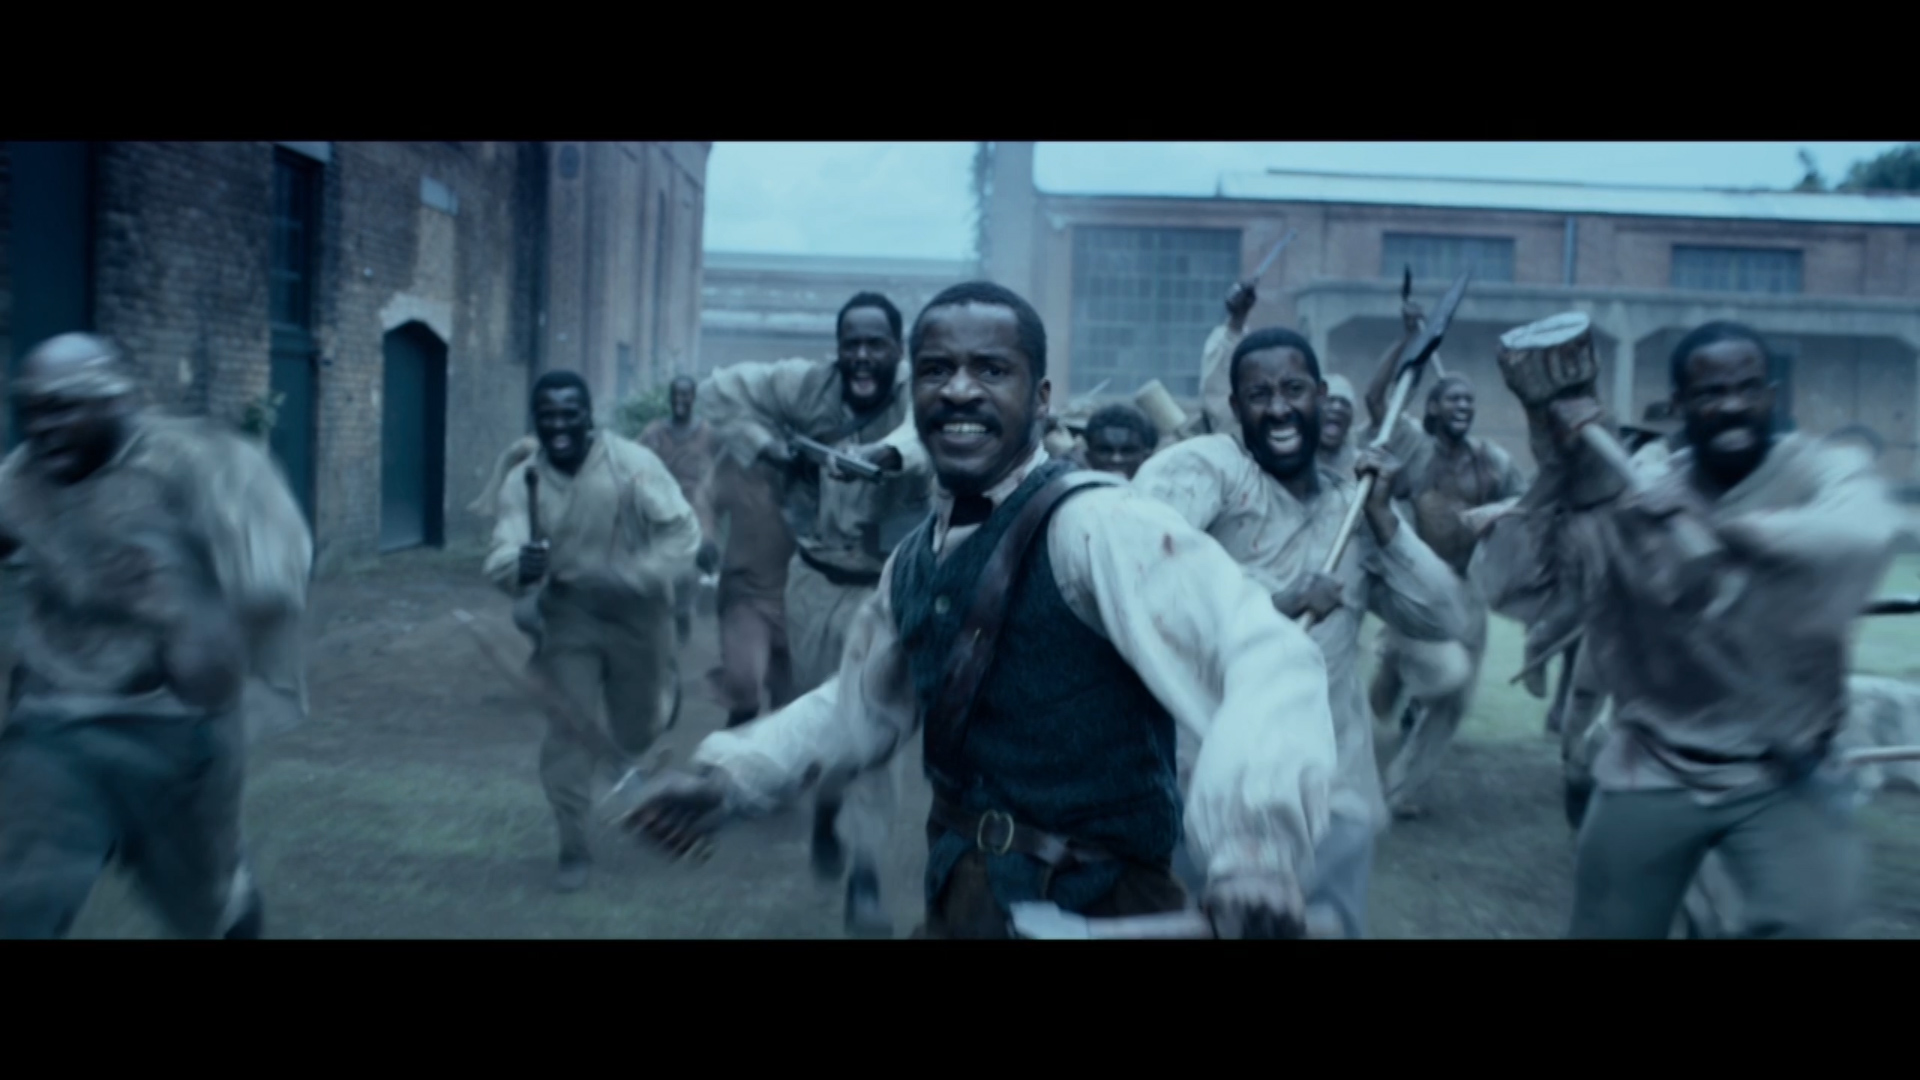 Movie the birth of a nation essay